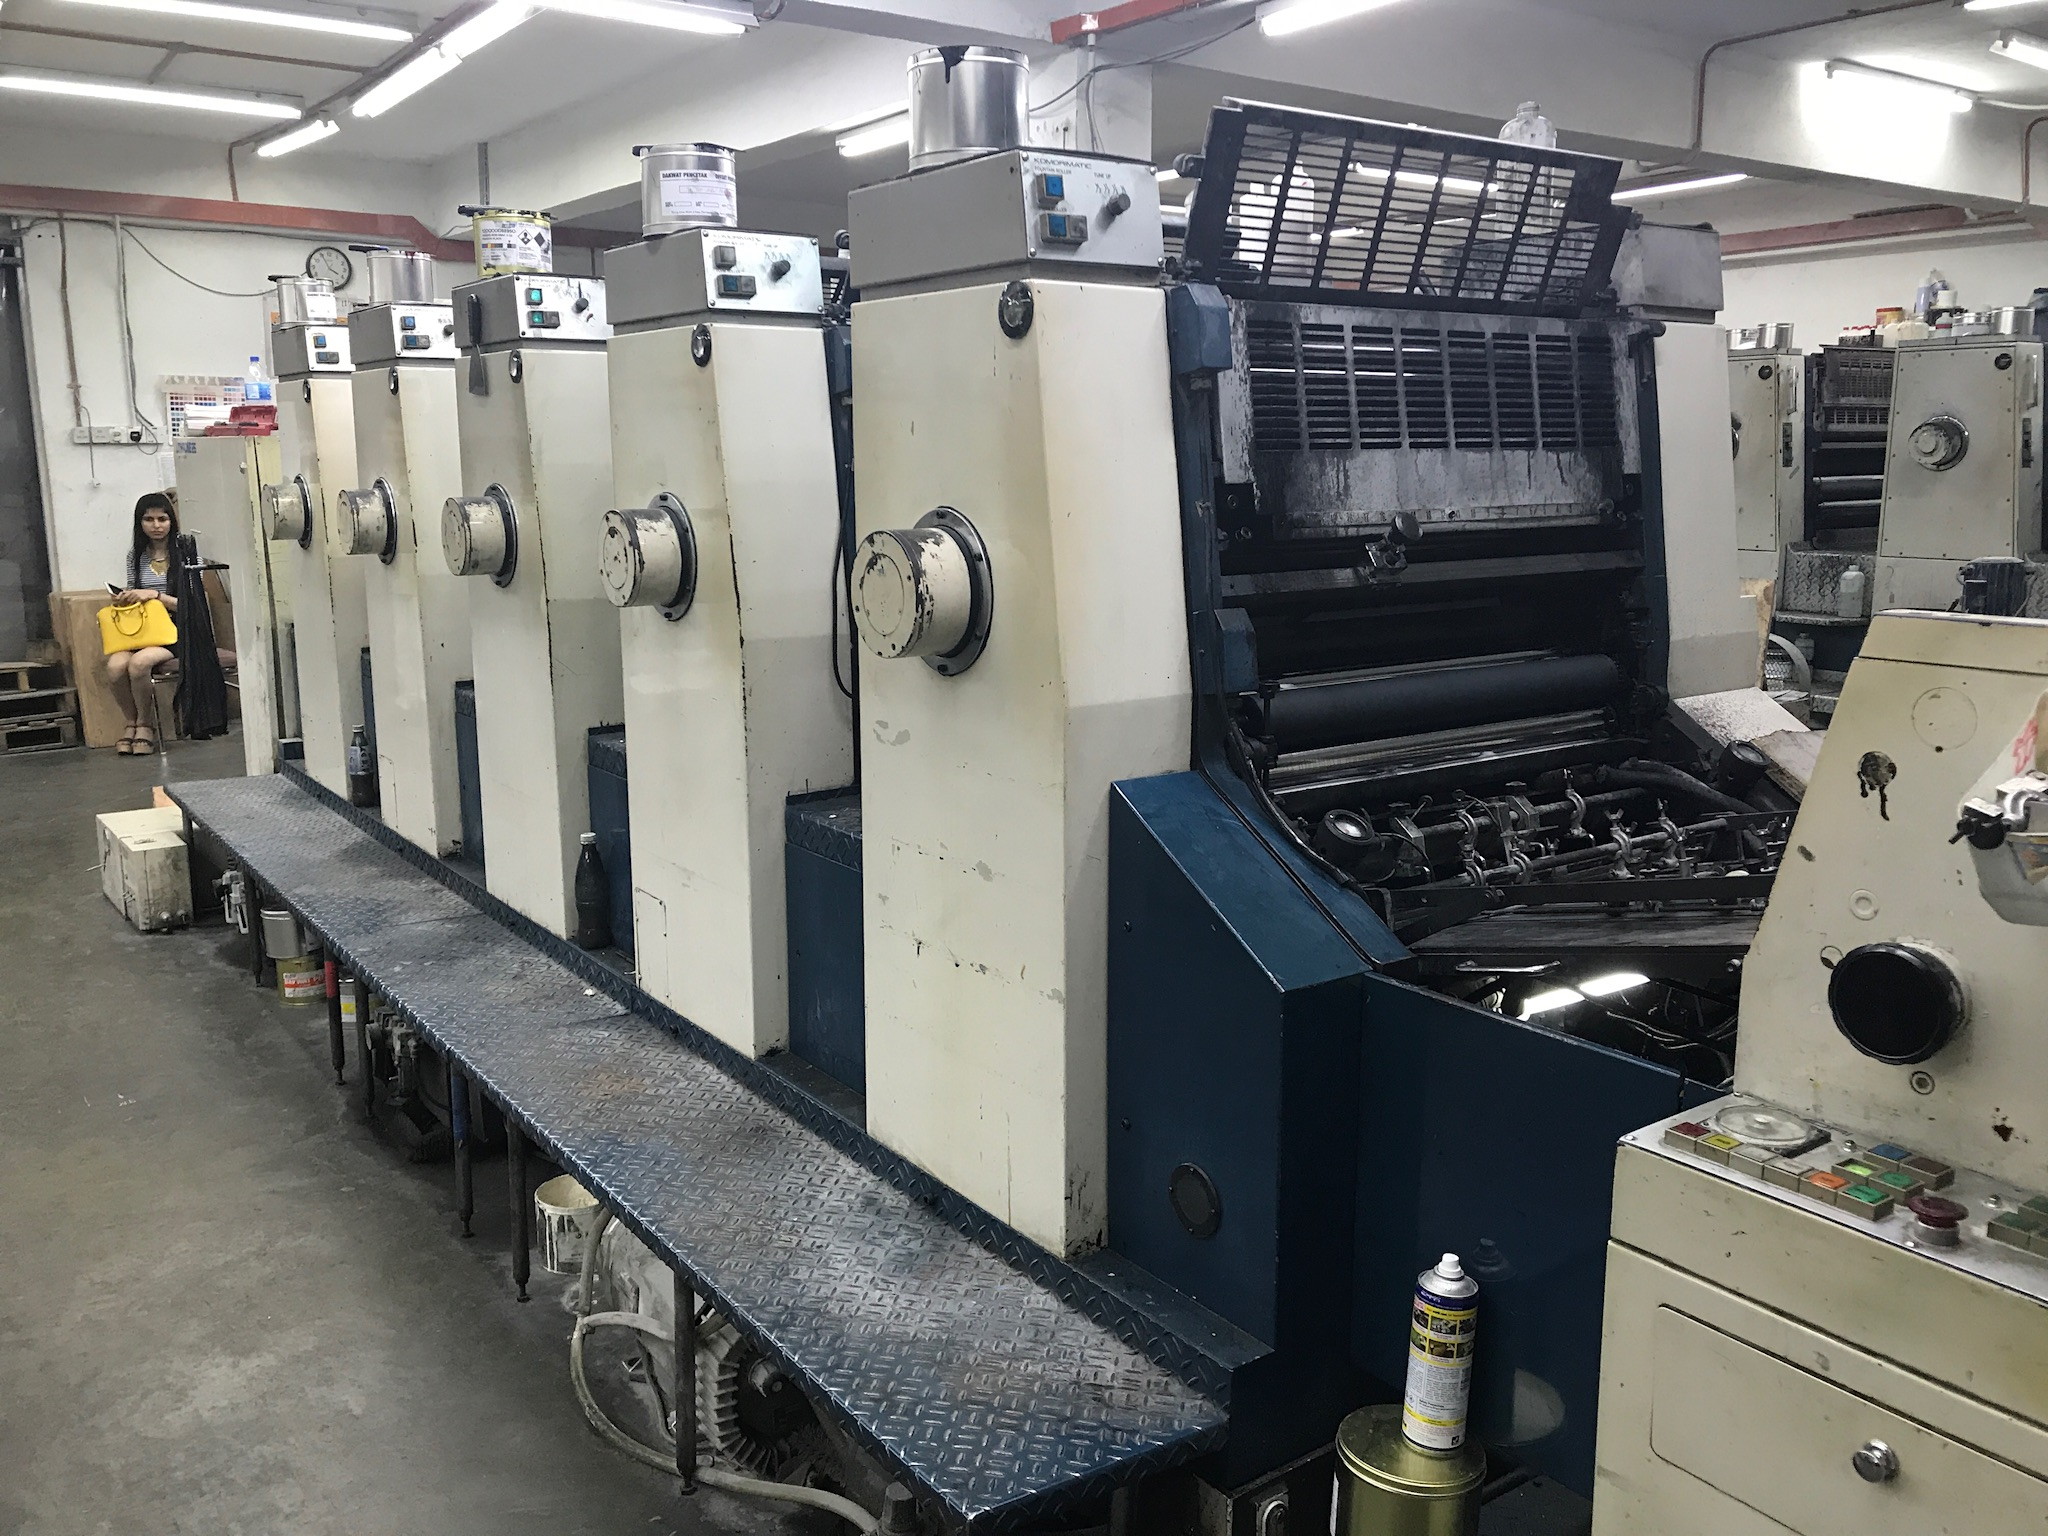 Five Colour Offset Printing Machine Komori L 532 Suppliers in Moradabad